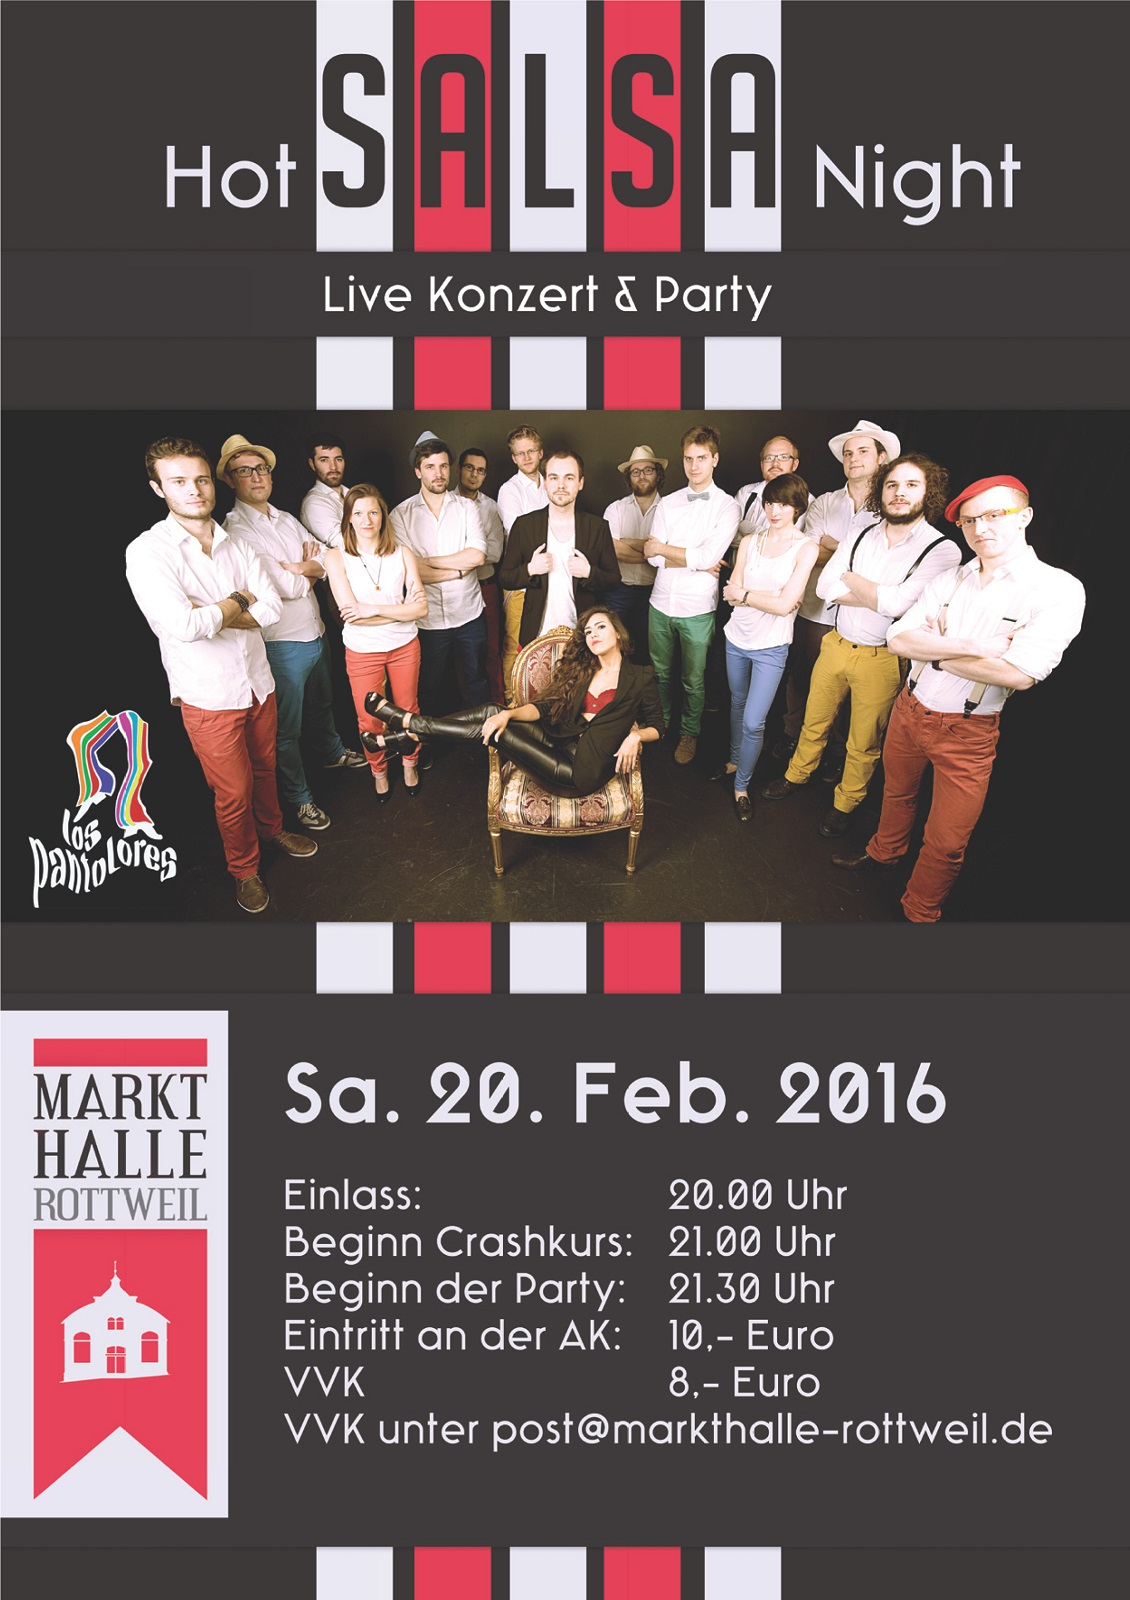 HOT' N' SPICY SALSA NIGHT in der MARKTHALLE ROTTWEIL Salsaparty in Rottweil